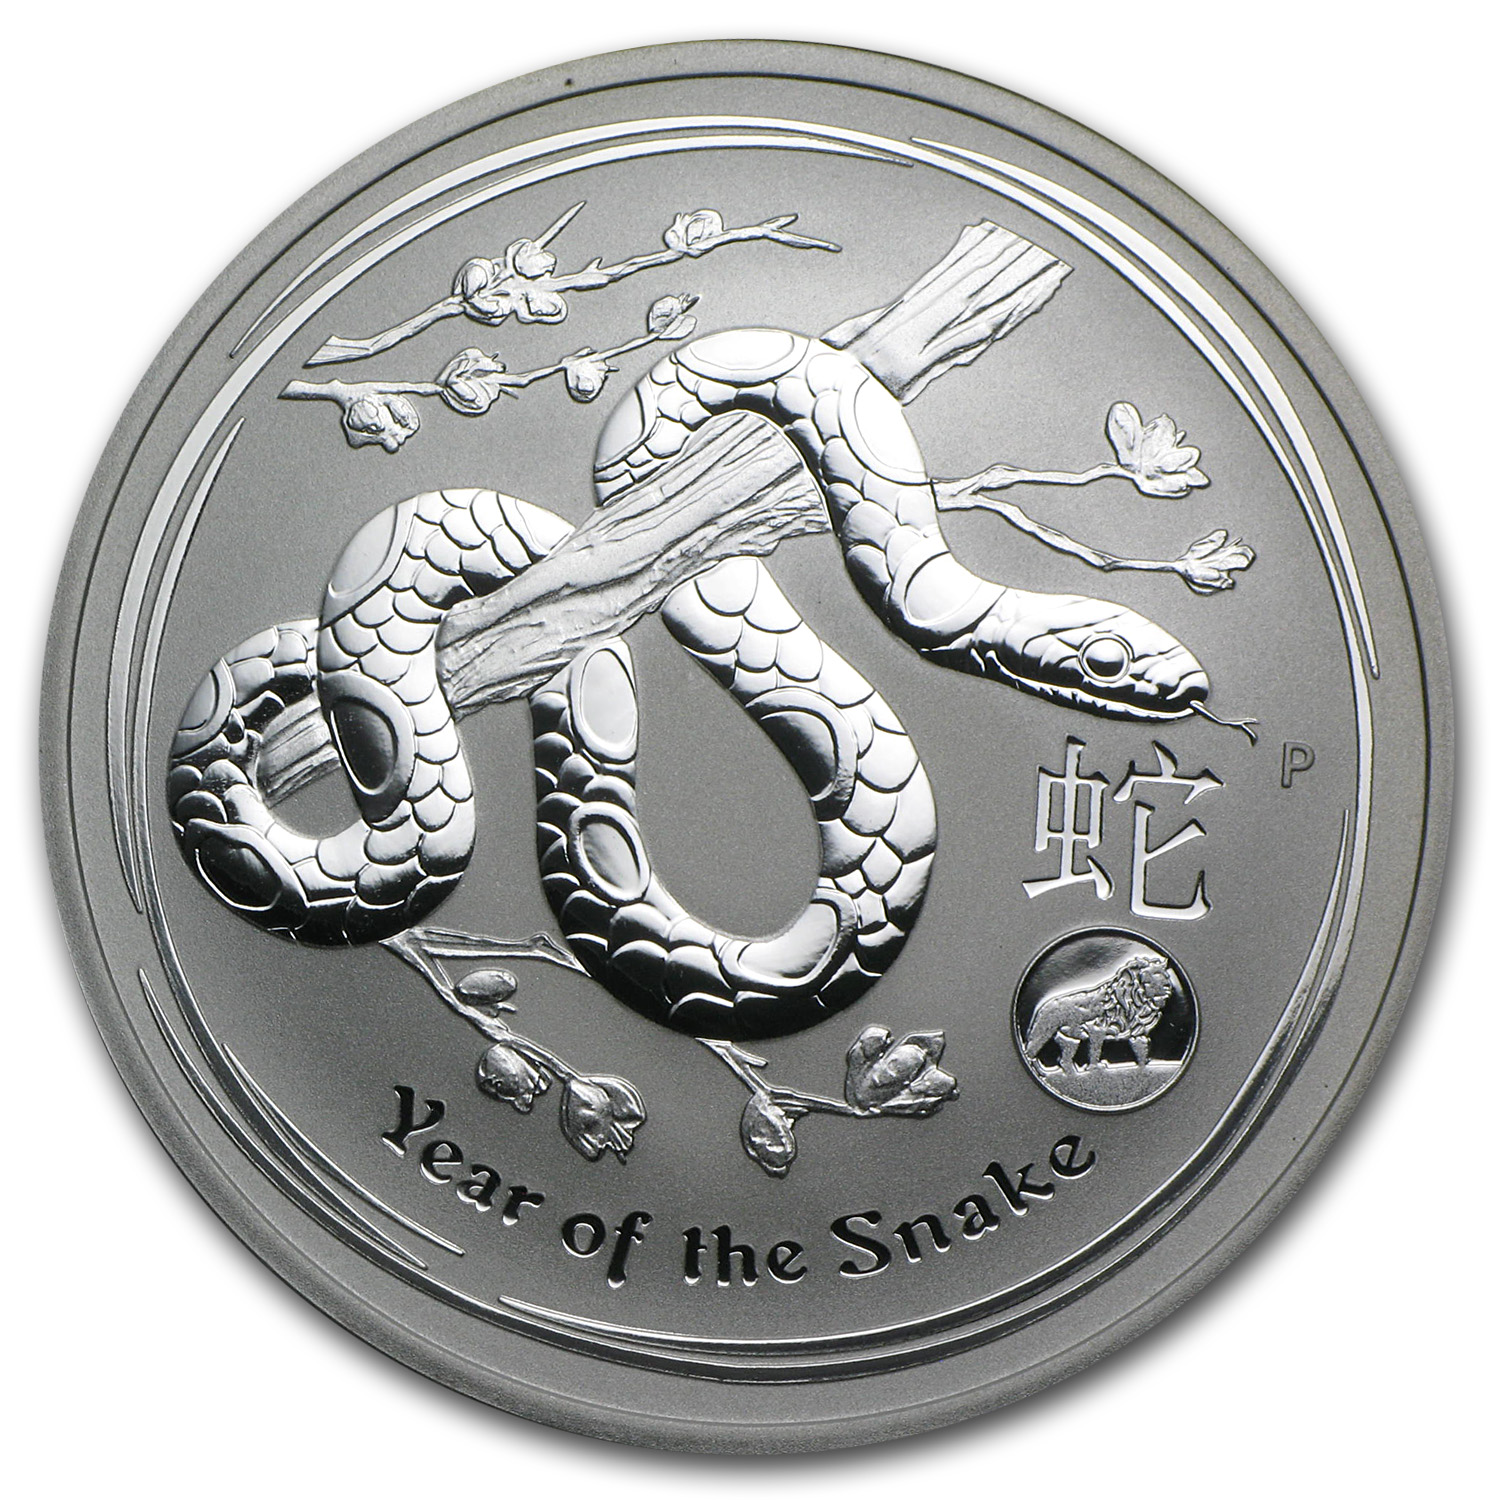 2013 1 oz Silver Australian Year of the Snake Coin (Lion Privy)